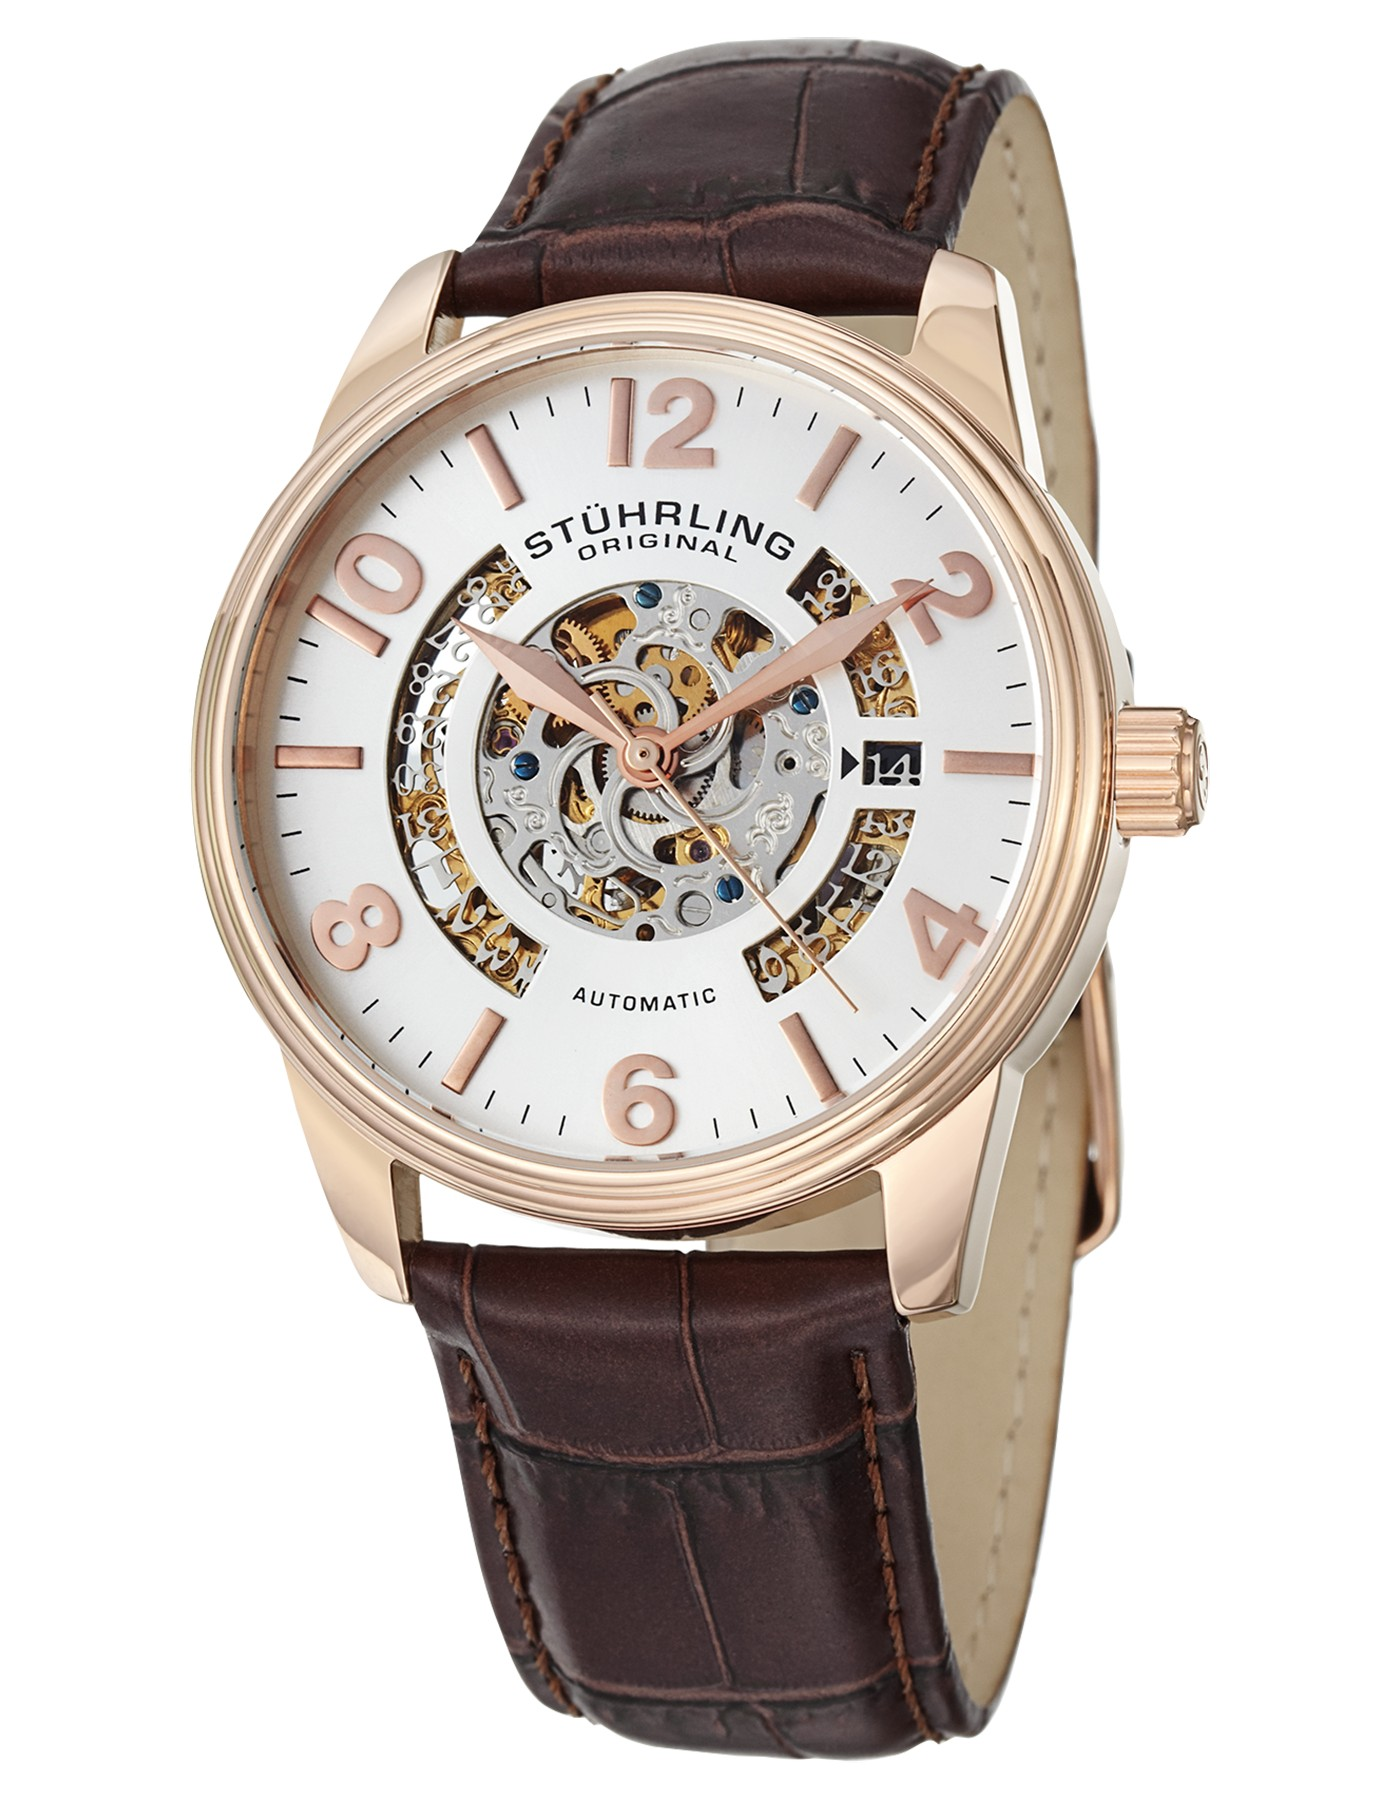 top 10 best mechanical watches for men under £200 most popular stuhrling original legacy men s automatic watch silver dial analogue display and brown leather strap 649 02